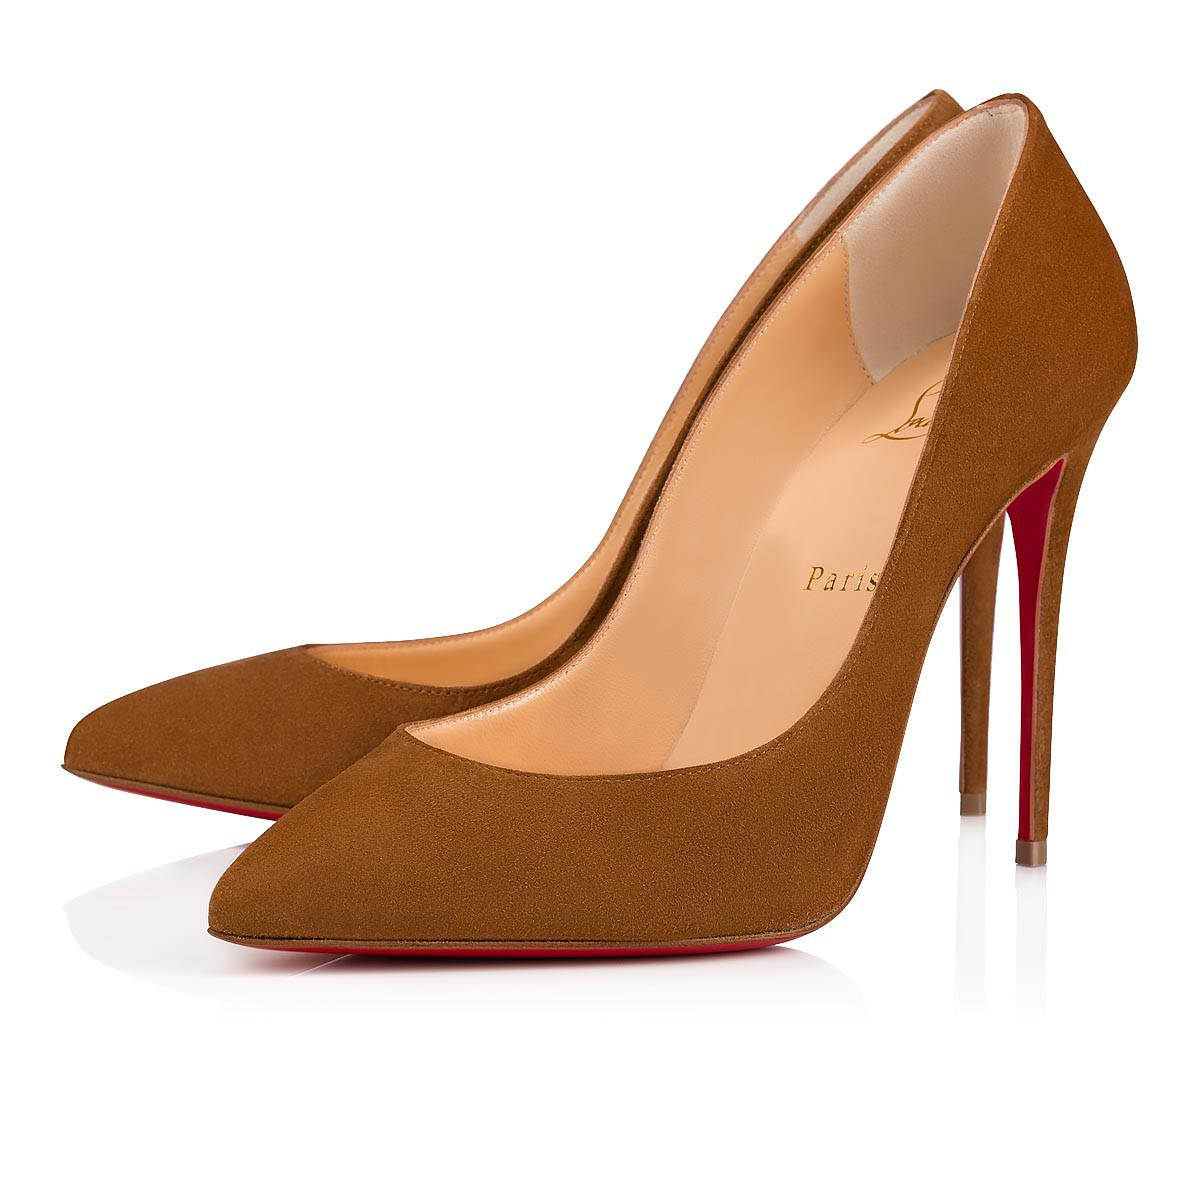 33a1944e7bba Lyst - Christian Louboutin Pigalle Follies in Brown